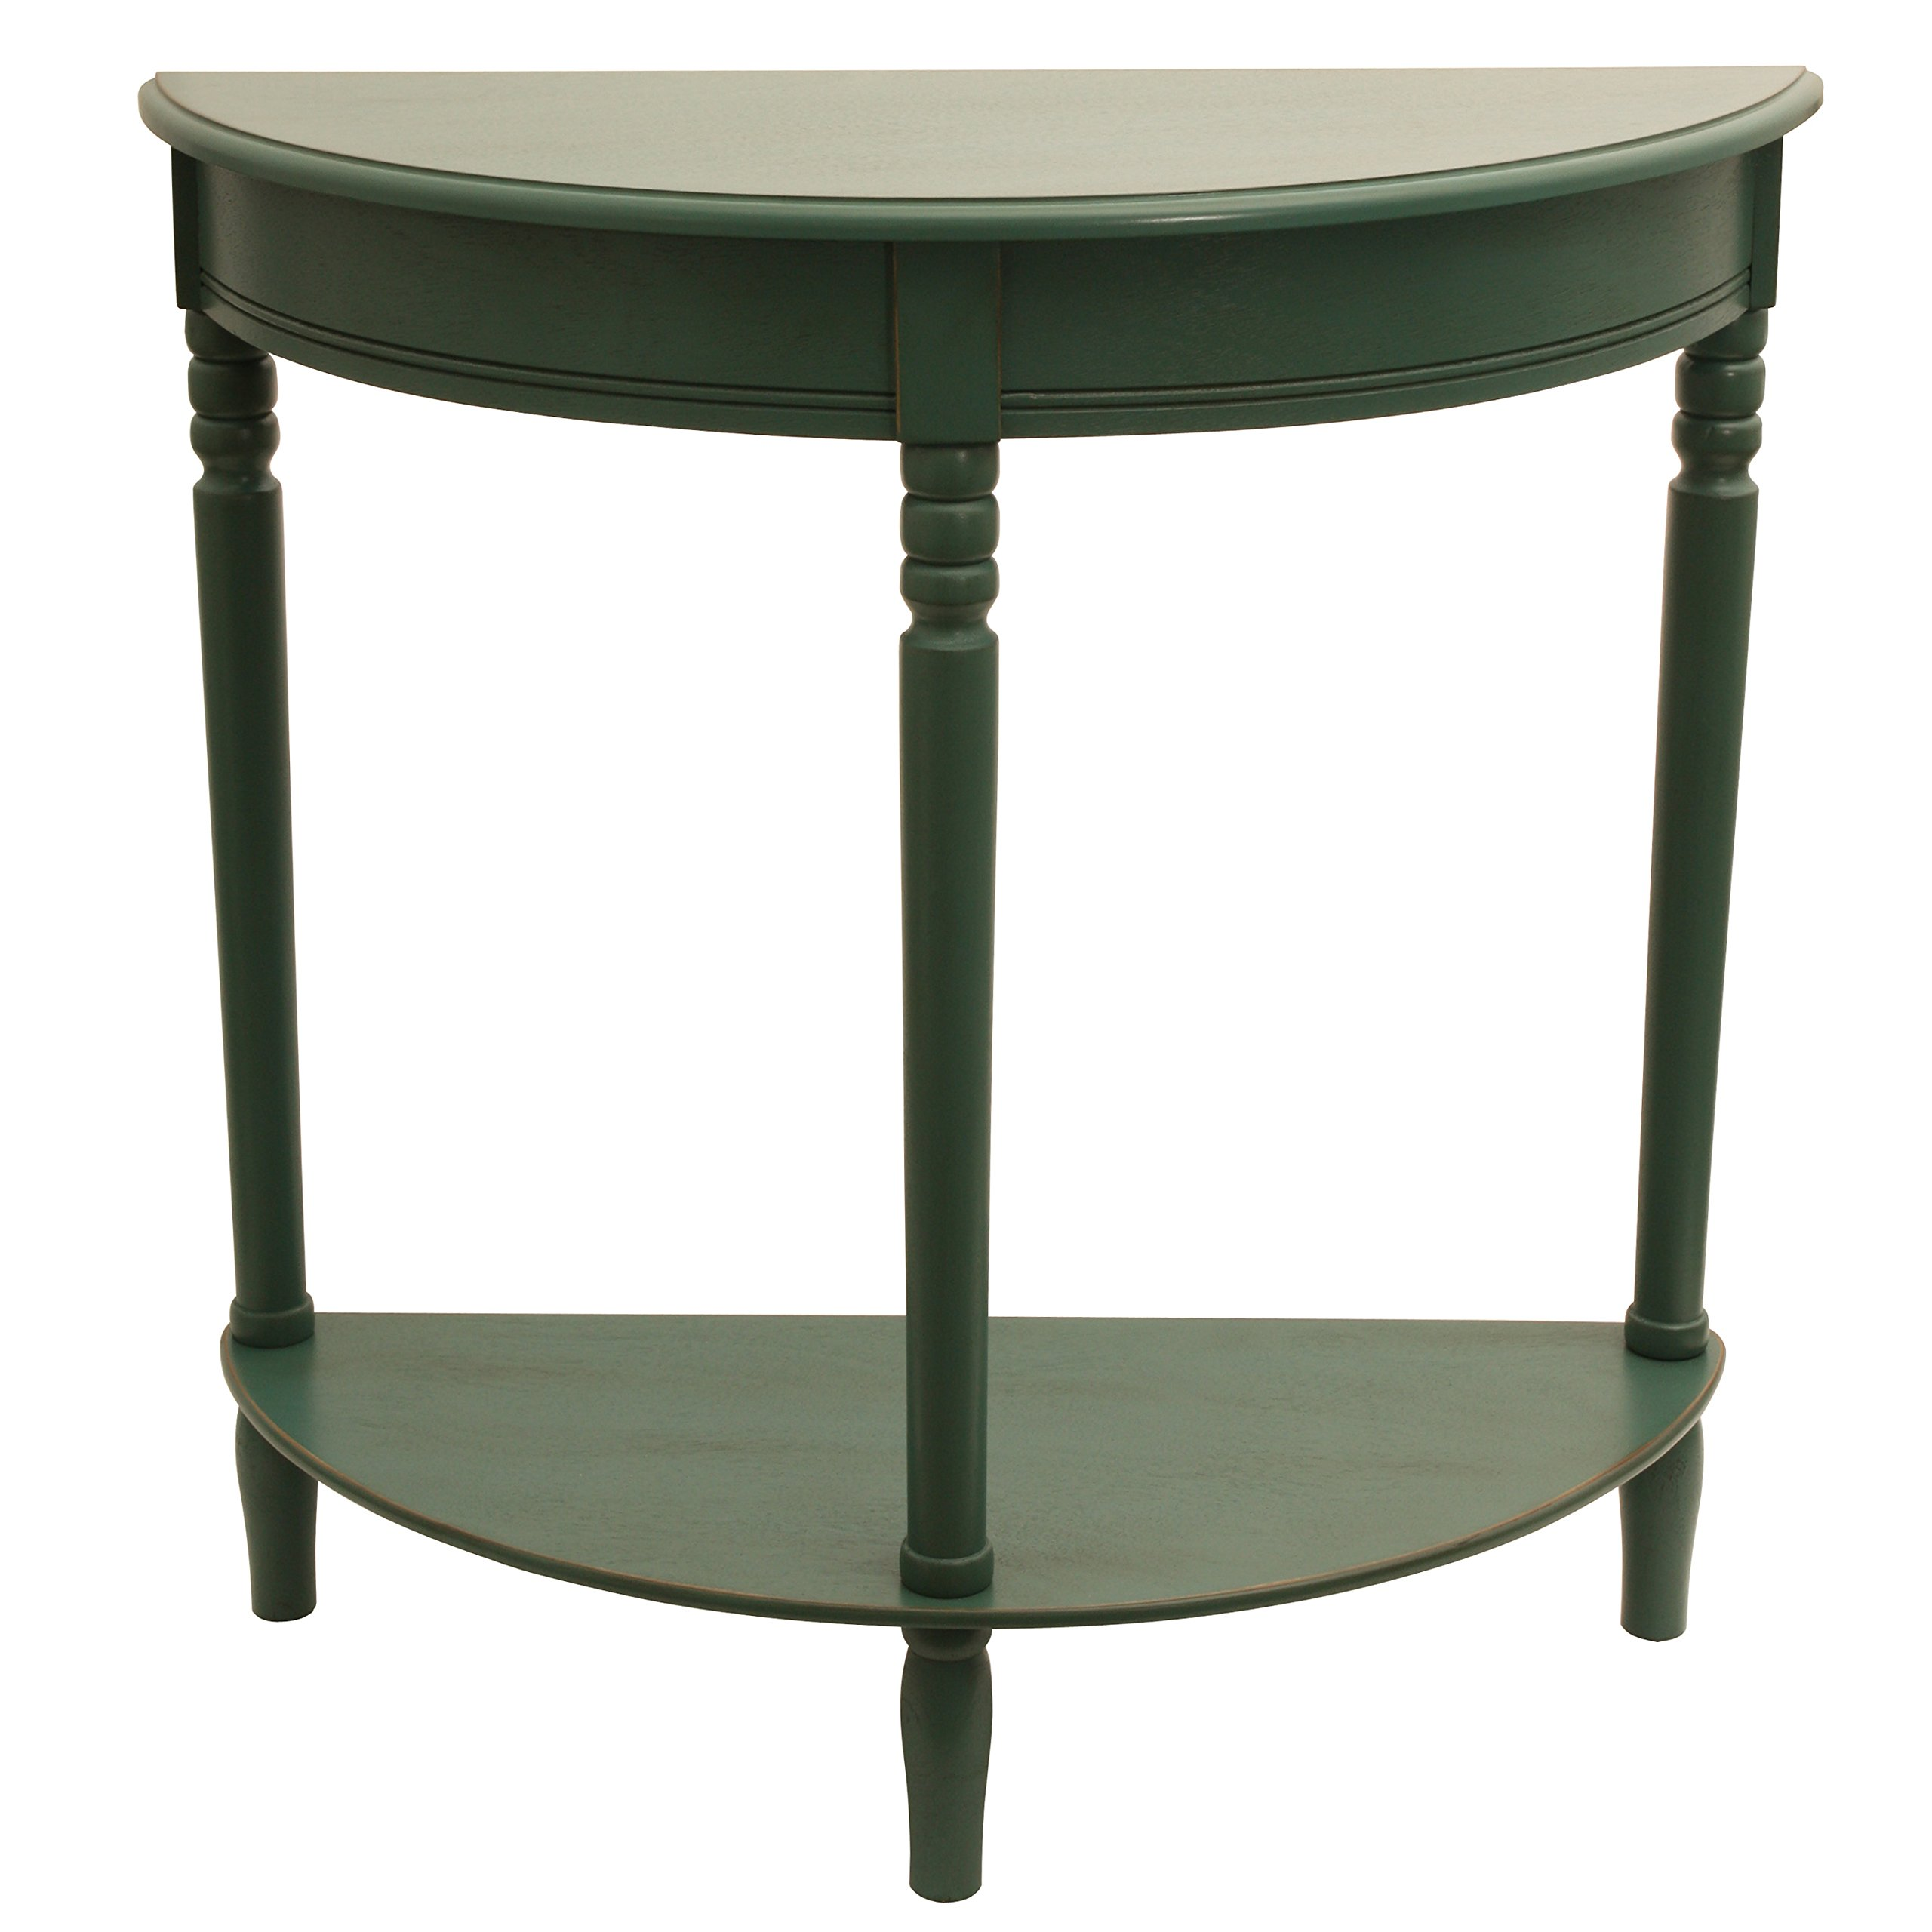 Décor Therapy FR1800 Half Round Table, Antique Teal Finish, 28.25'' W x 11.8'' D x 28.25'' H